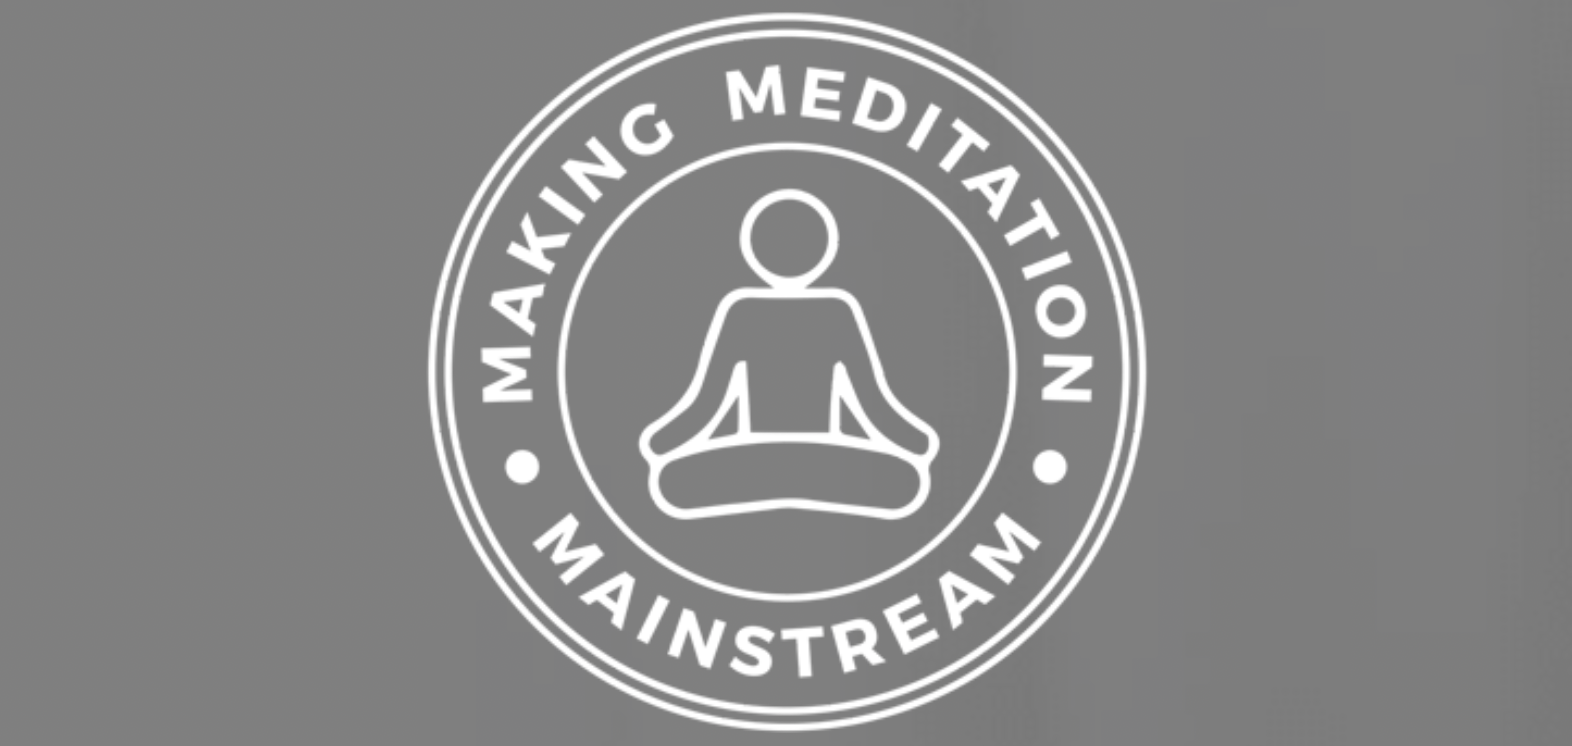 Making Meditation Mainstream raises over $30,000 for Lifeline with 28 for Twenty Eight initiative Image